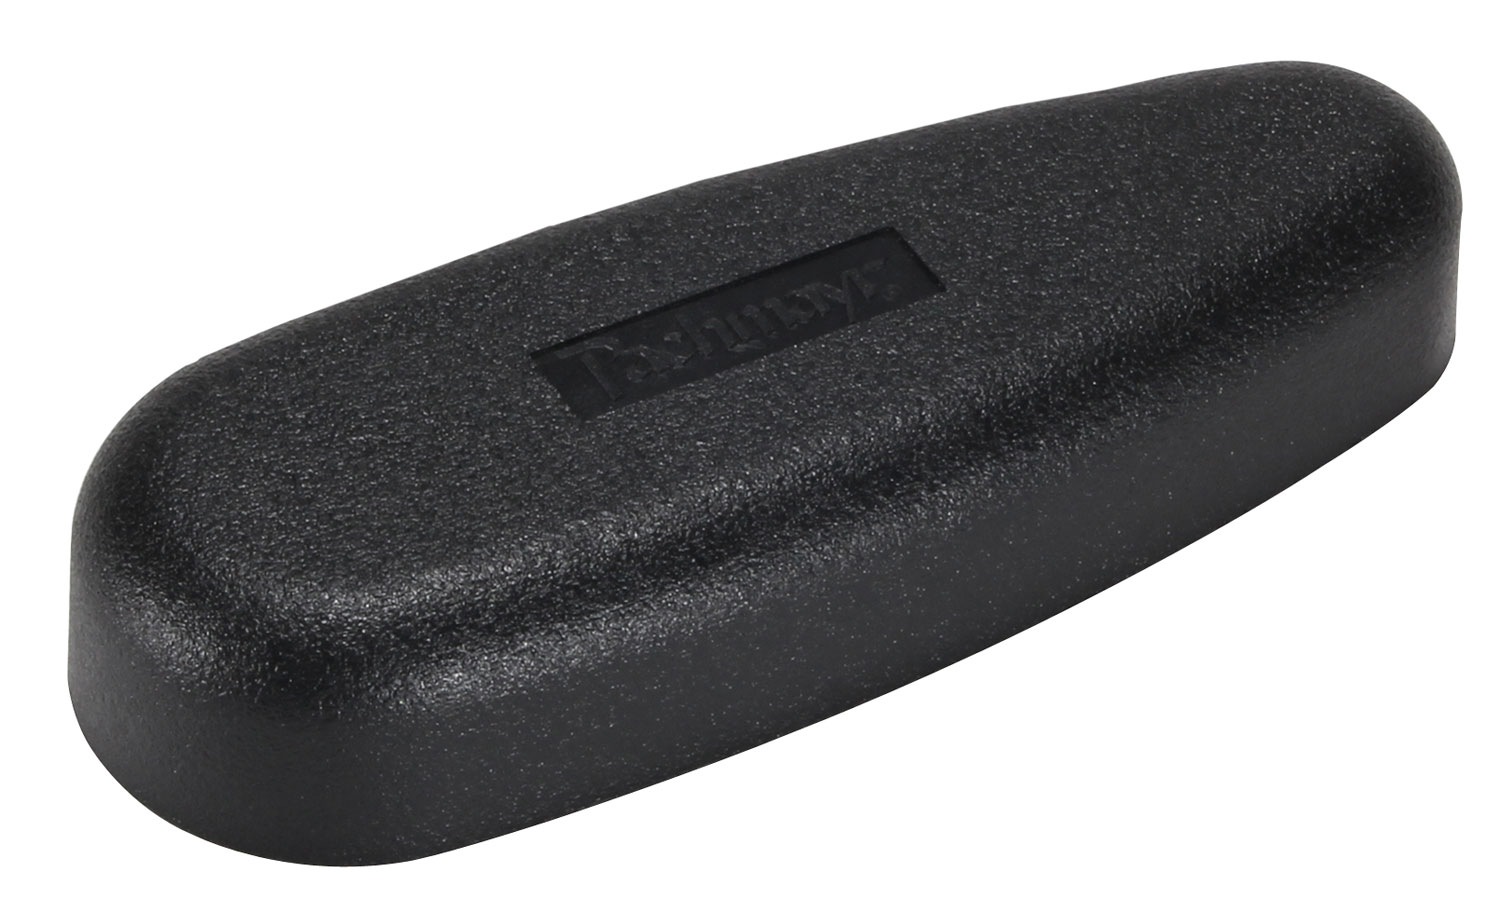 AR 15 Recoil Pad Slip-on Fits most M4 style